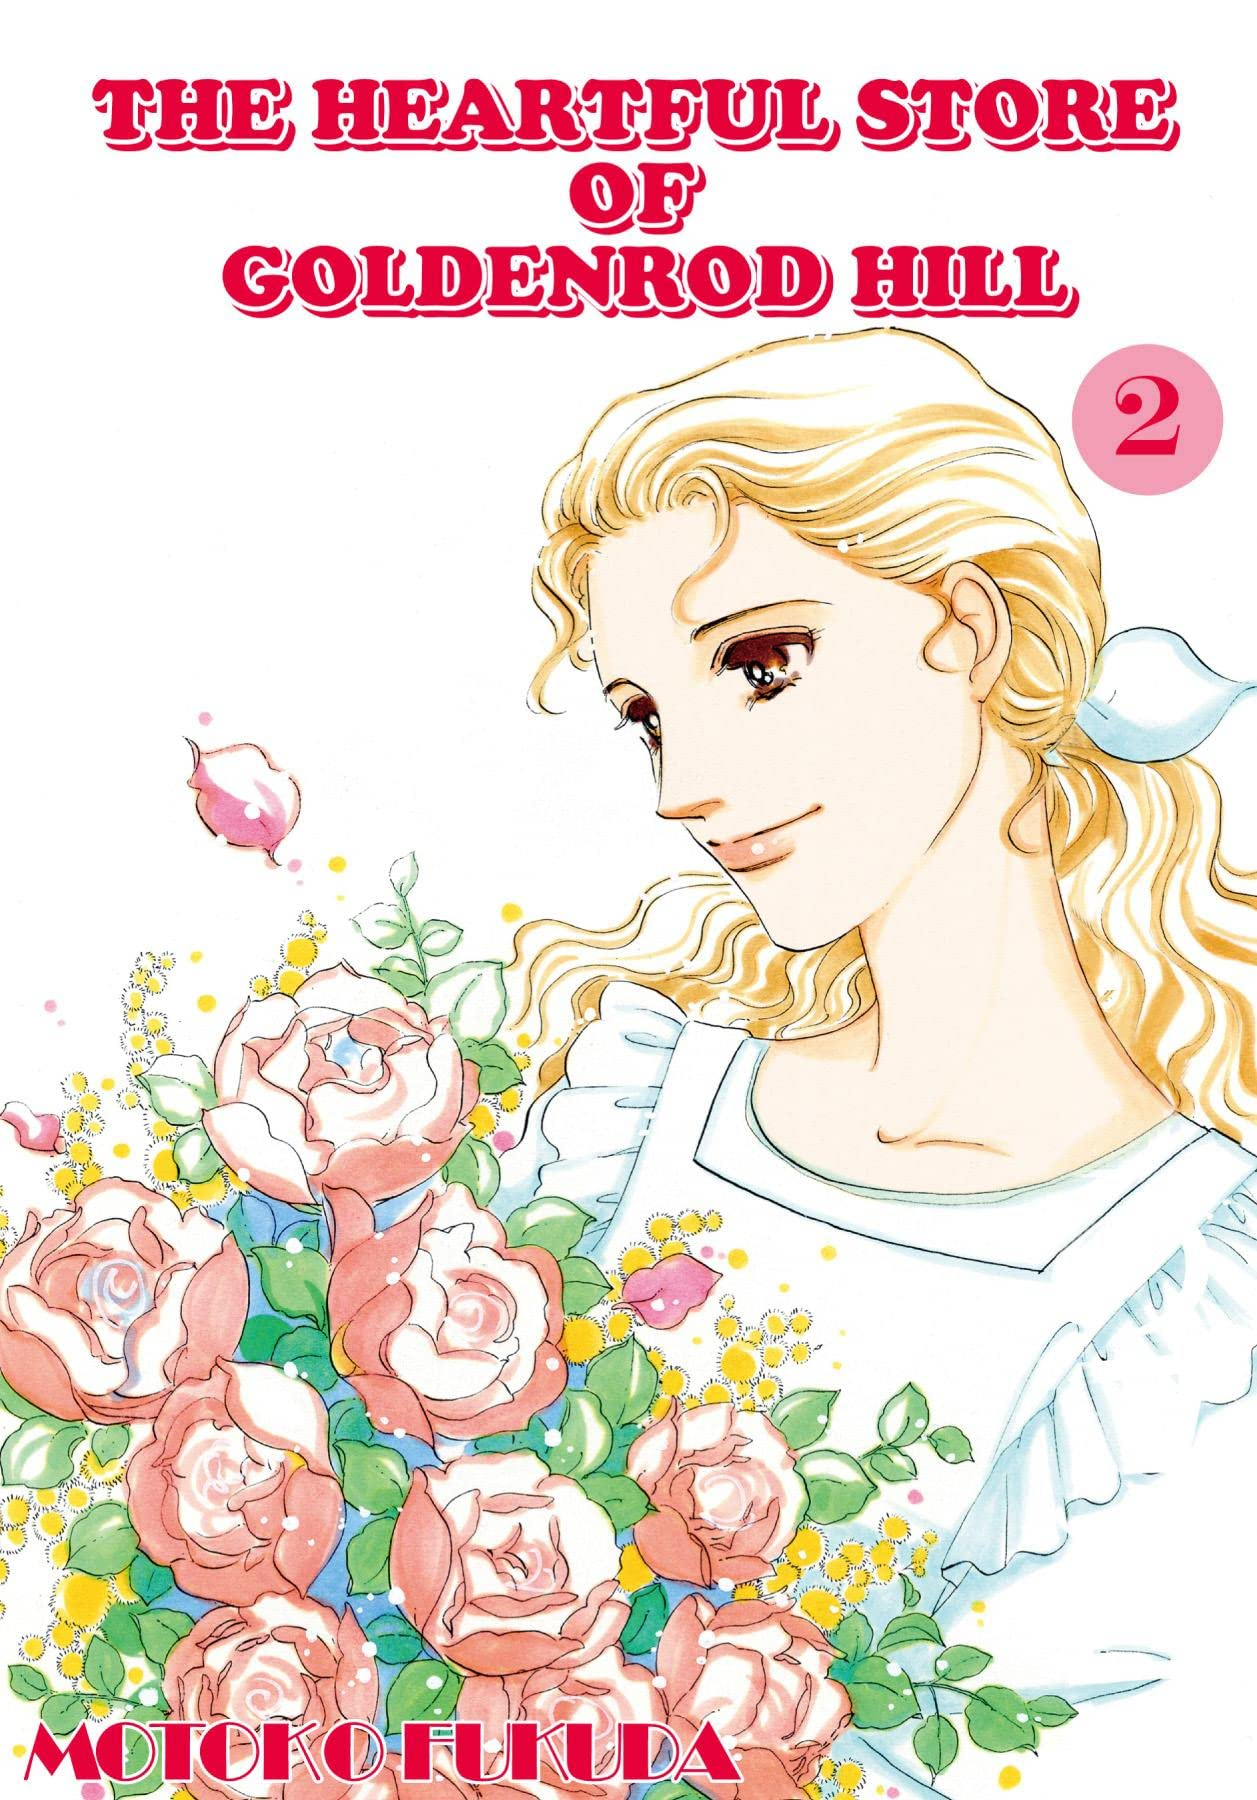 THE HEARTFUL STORE OF GOLDENROD HILL Vol. 2